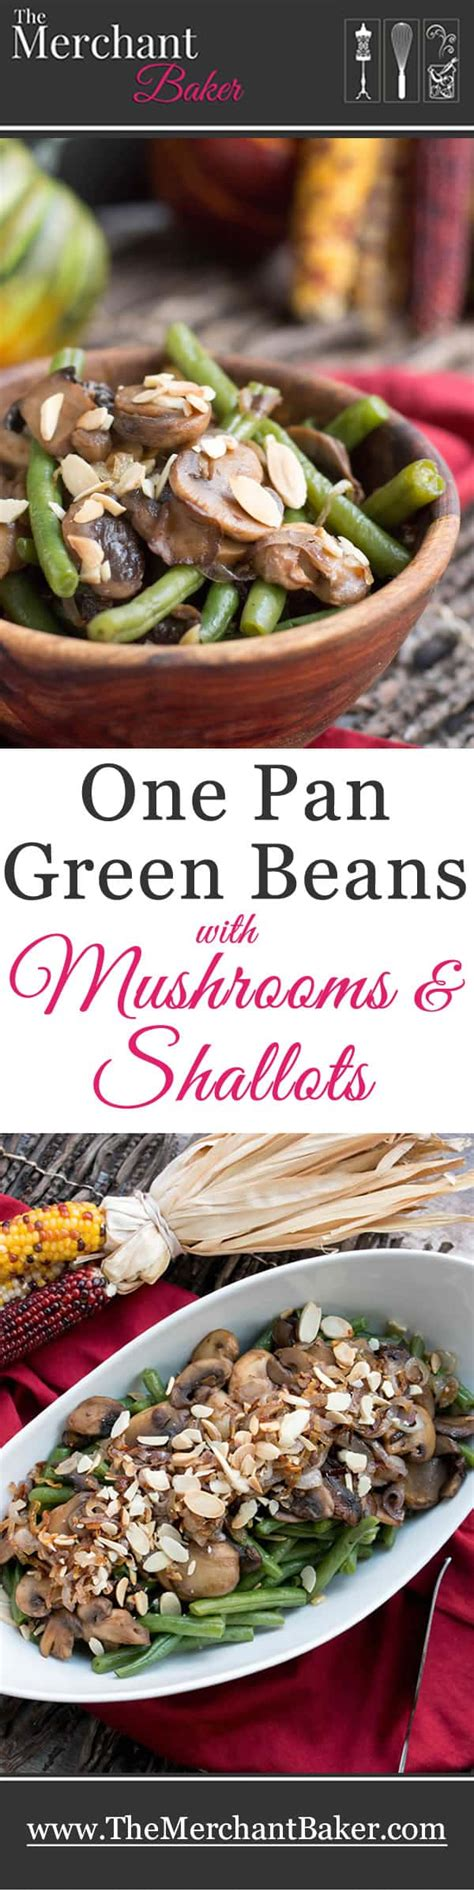 why i green beans and other confessions about relationships reality tv and how we see ourselves books one pan green beans mushrooms and shallots the merchant